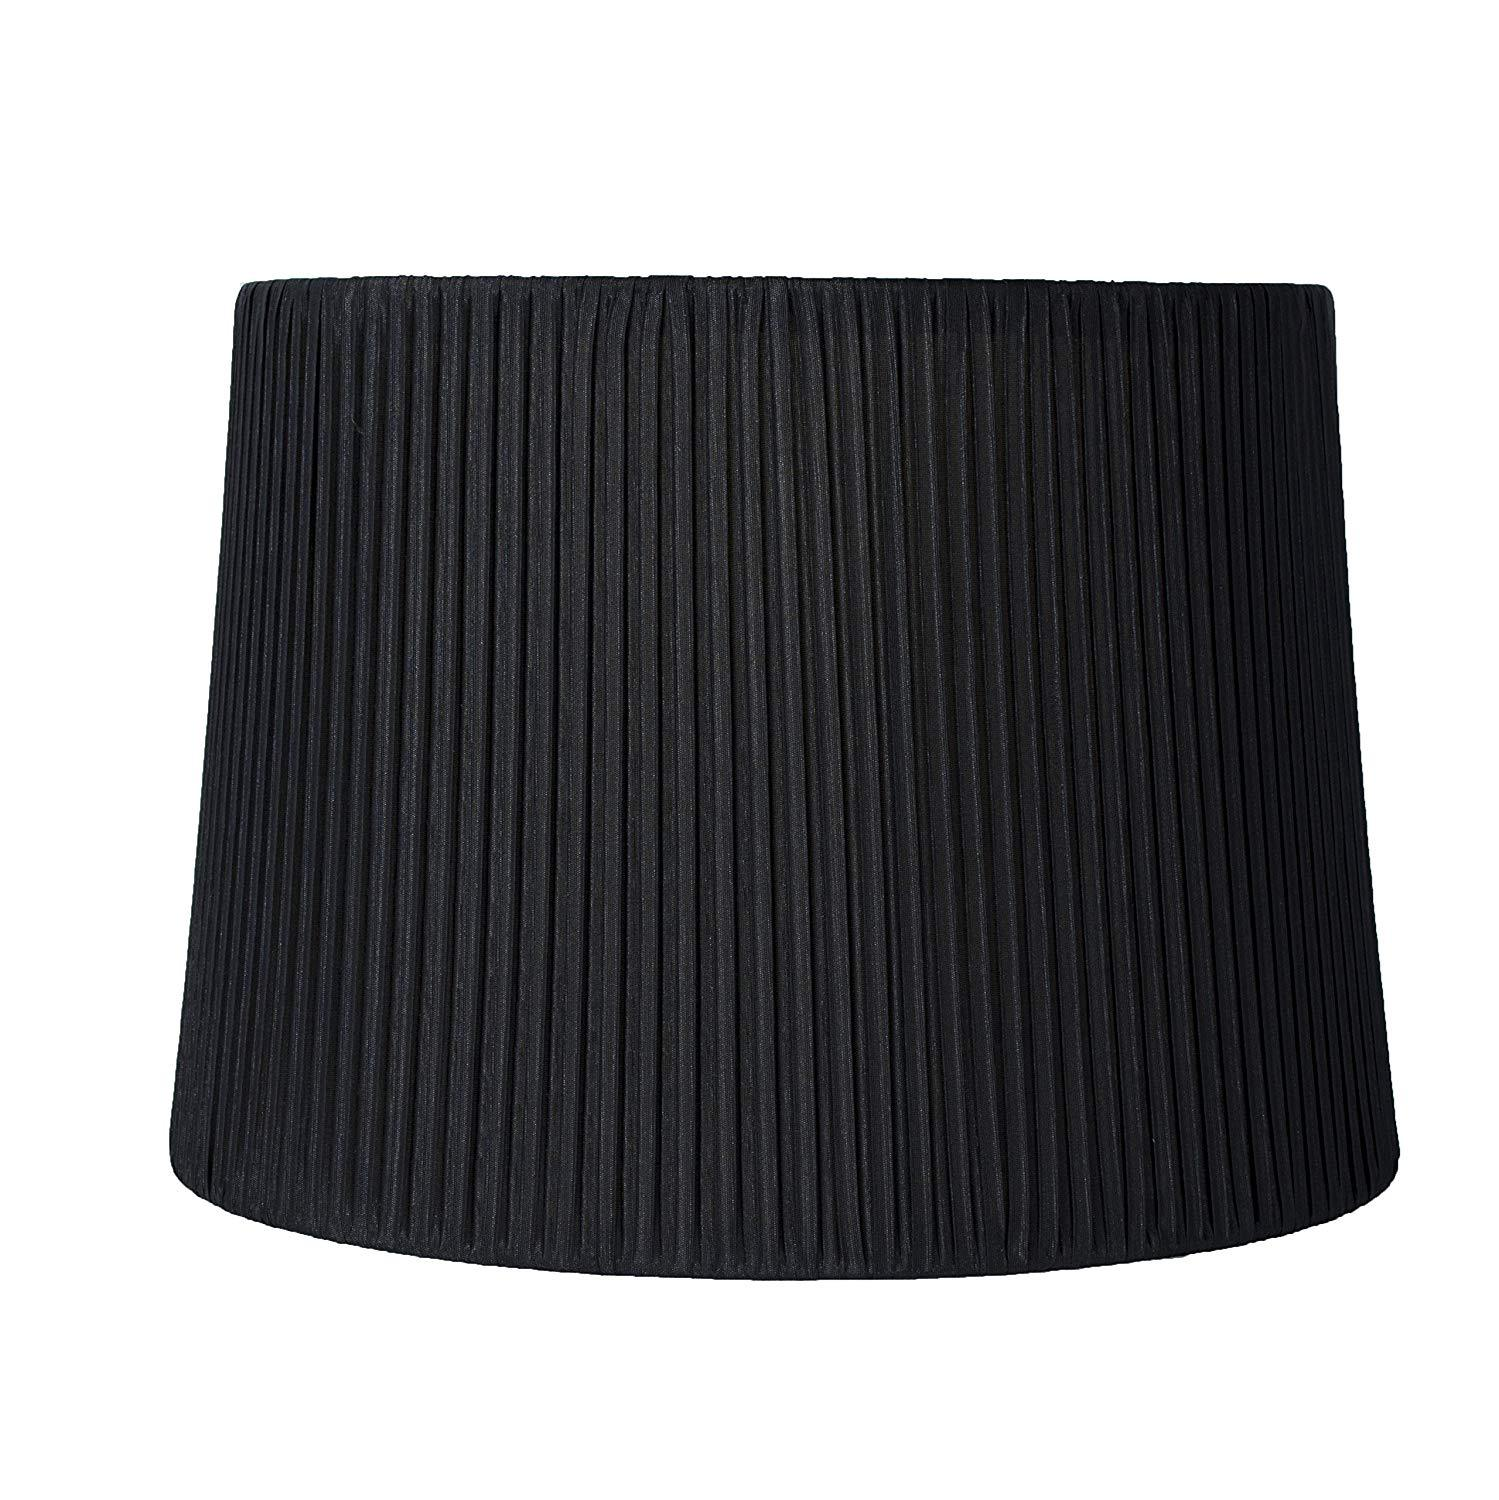 Faux Silk Box Pleated Drum Lampshade, 12-inch By 14-inch By 10-inch, Spider Fitter